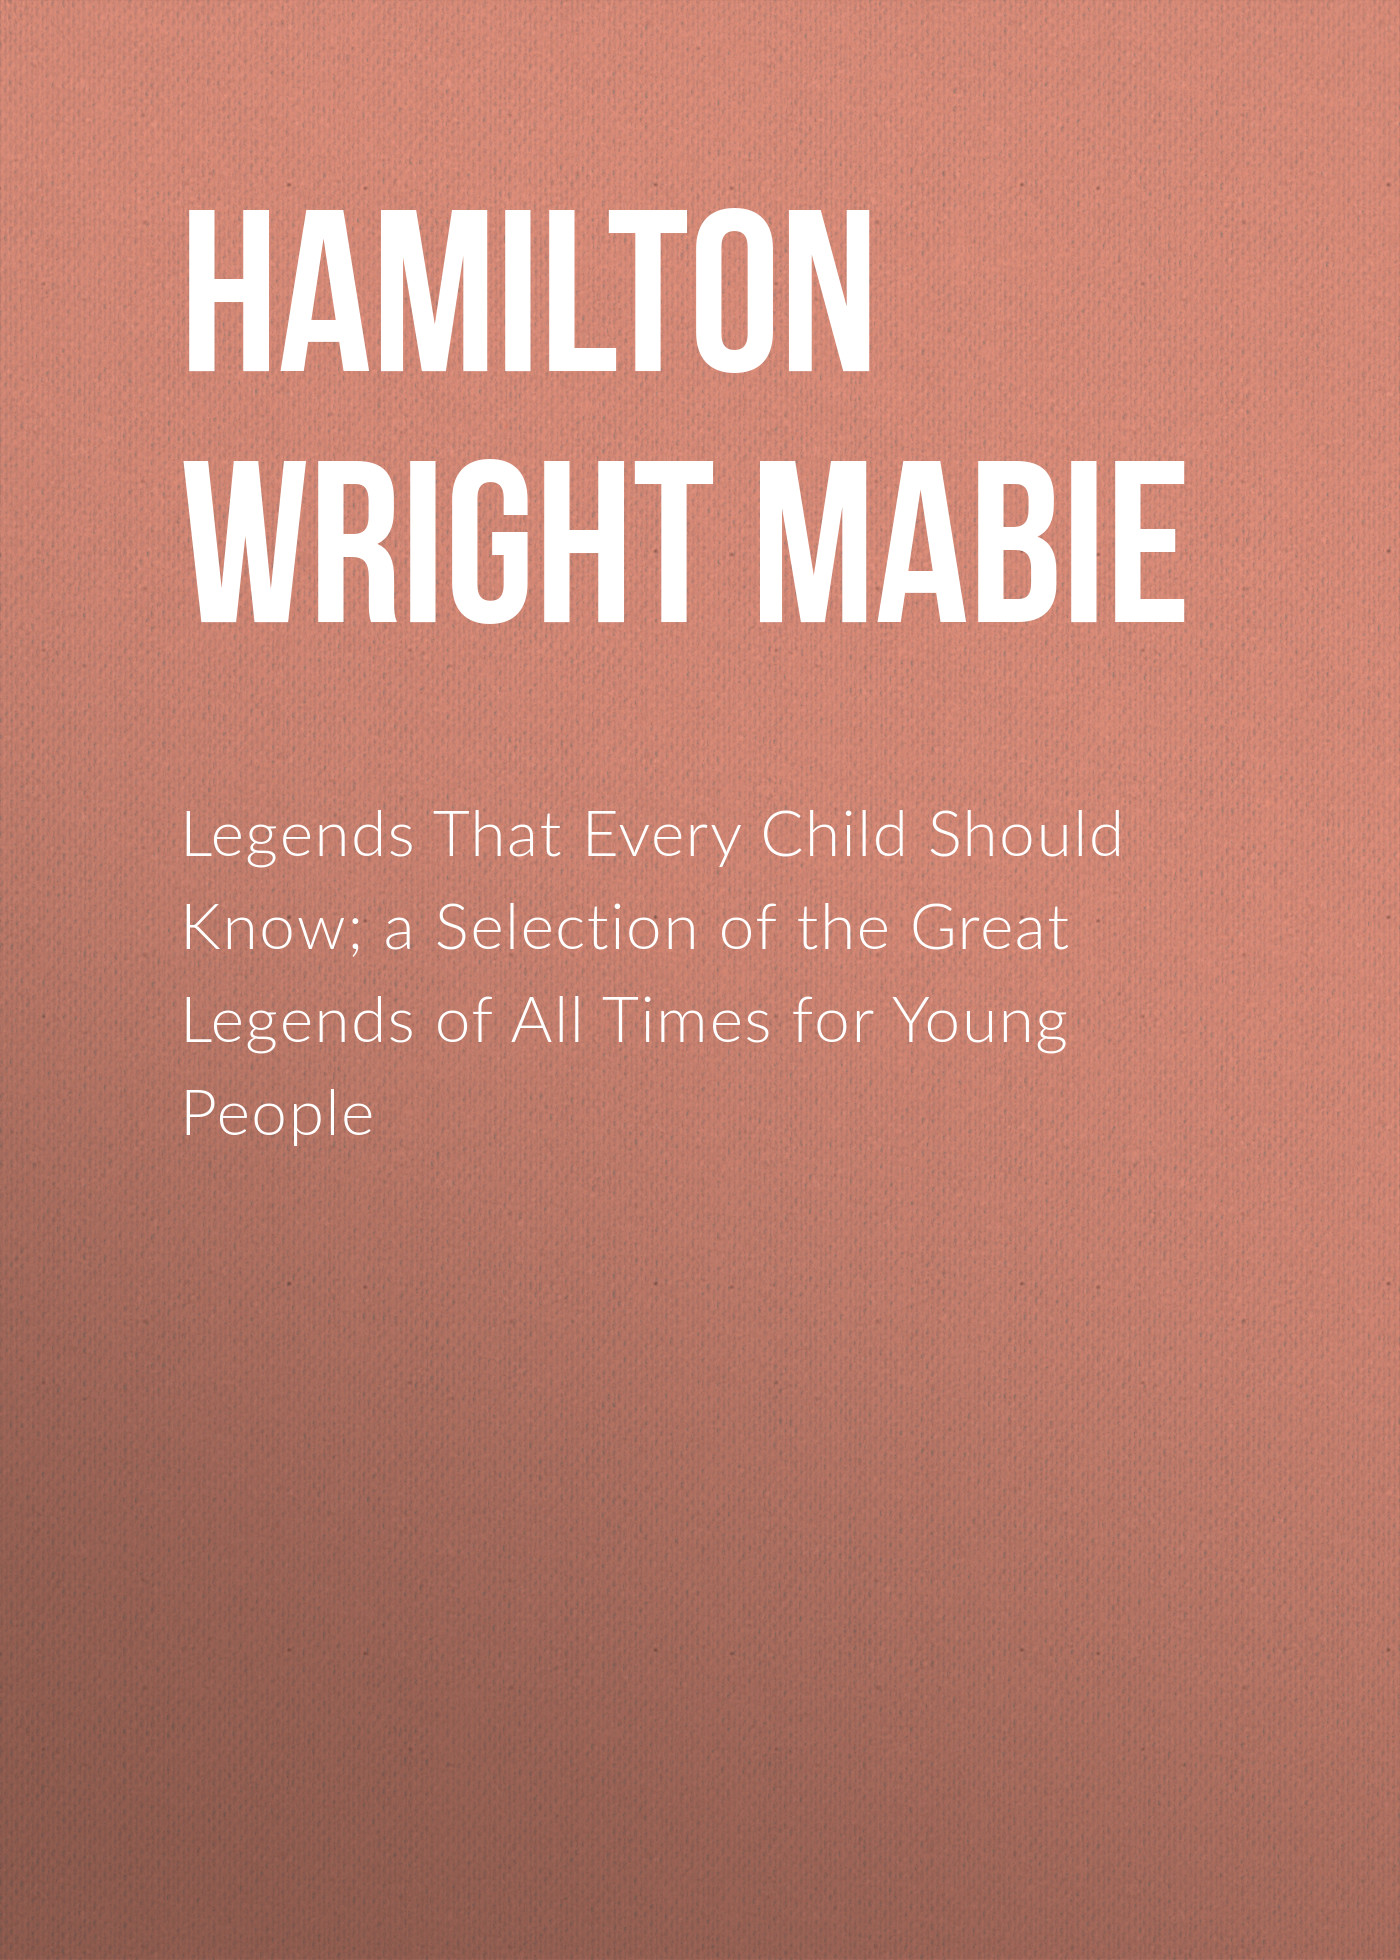 Hamilton Wright Mabie Legends That Every Child Should Know; a Selection of the Great Legends of All Times for Young People arthur l clark bosnia what every american should know